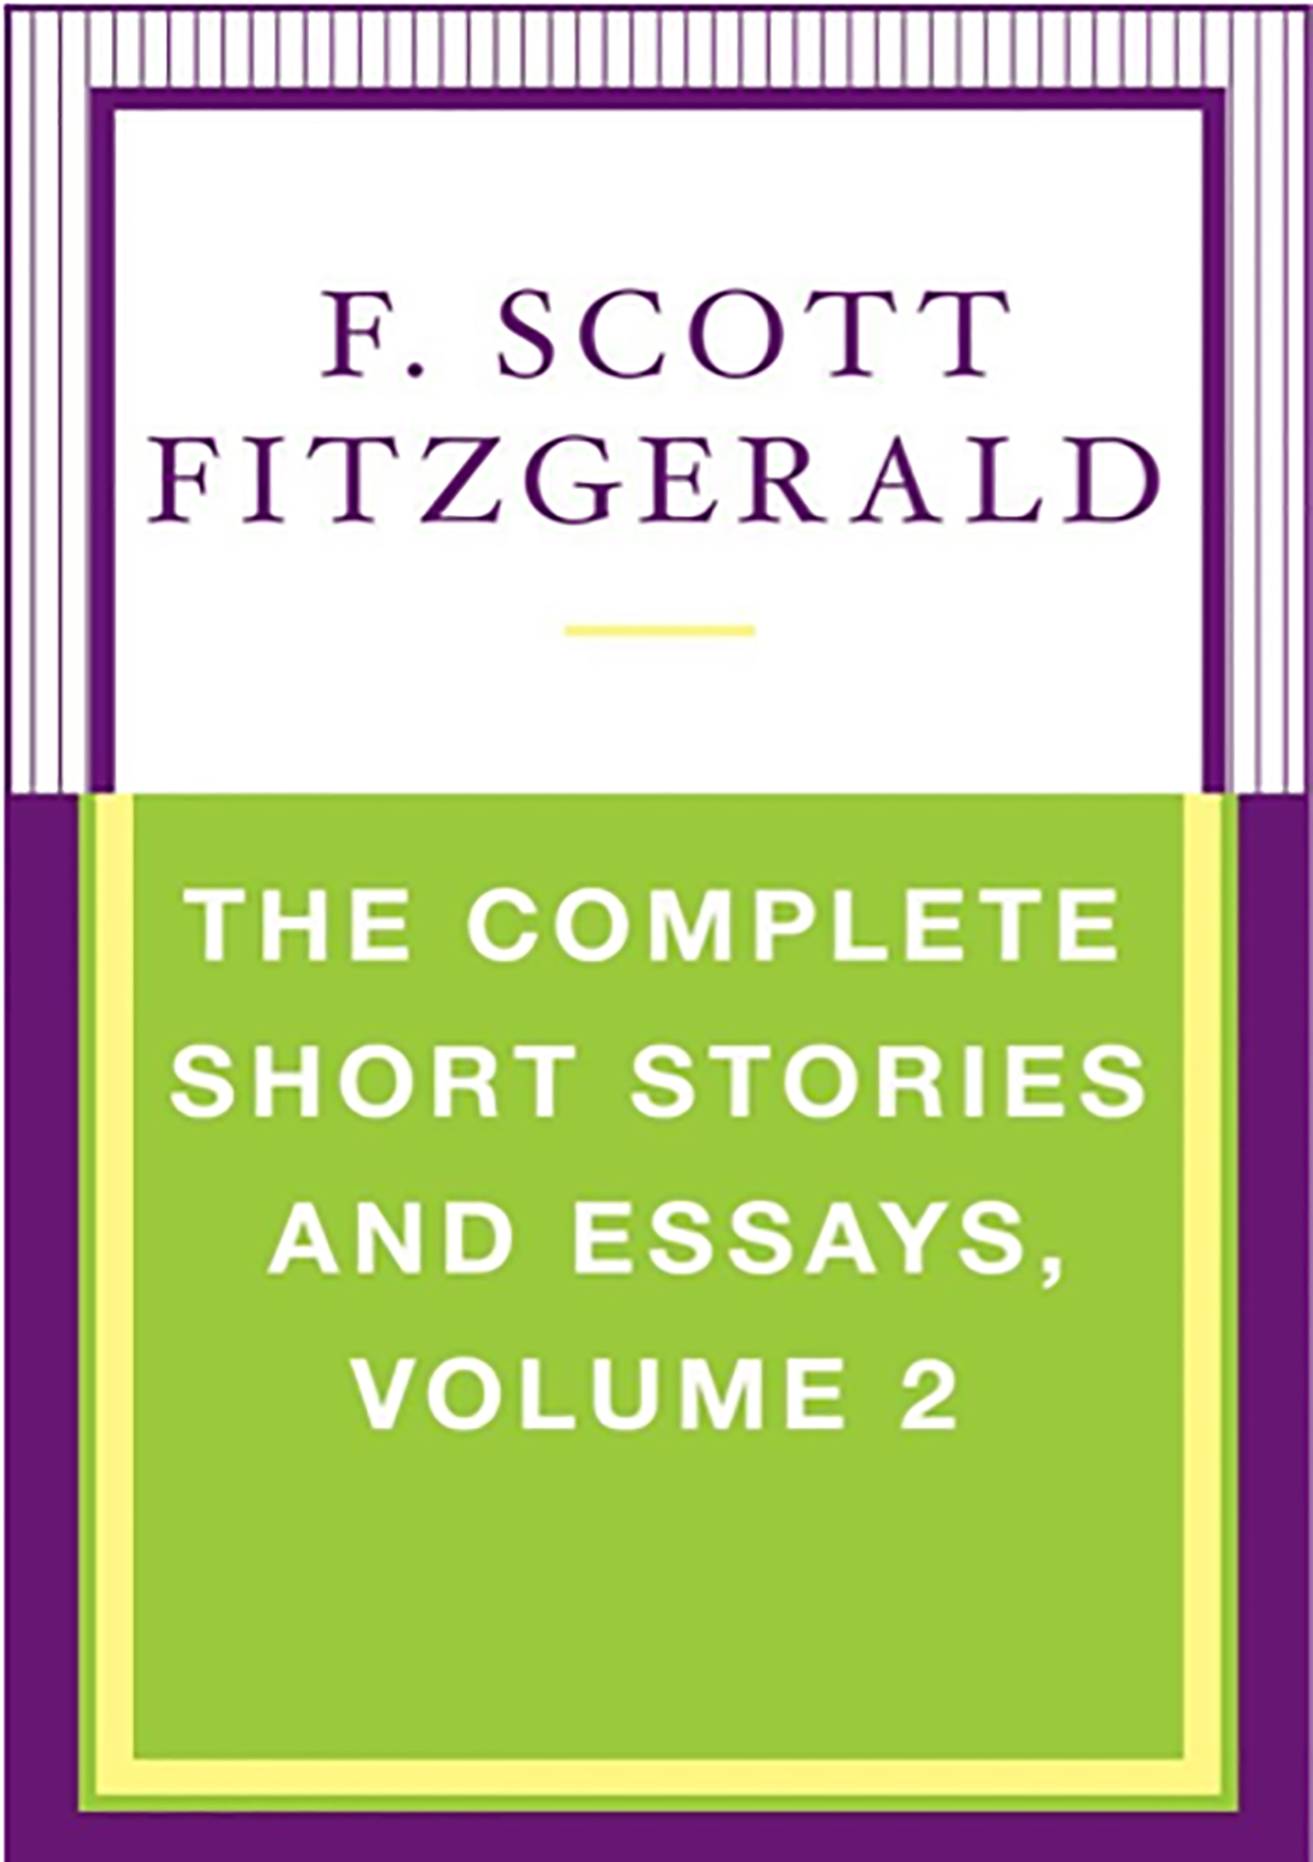 essays on short stories A selection of excellent, original short fiction by teenage writers around the world.